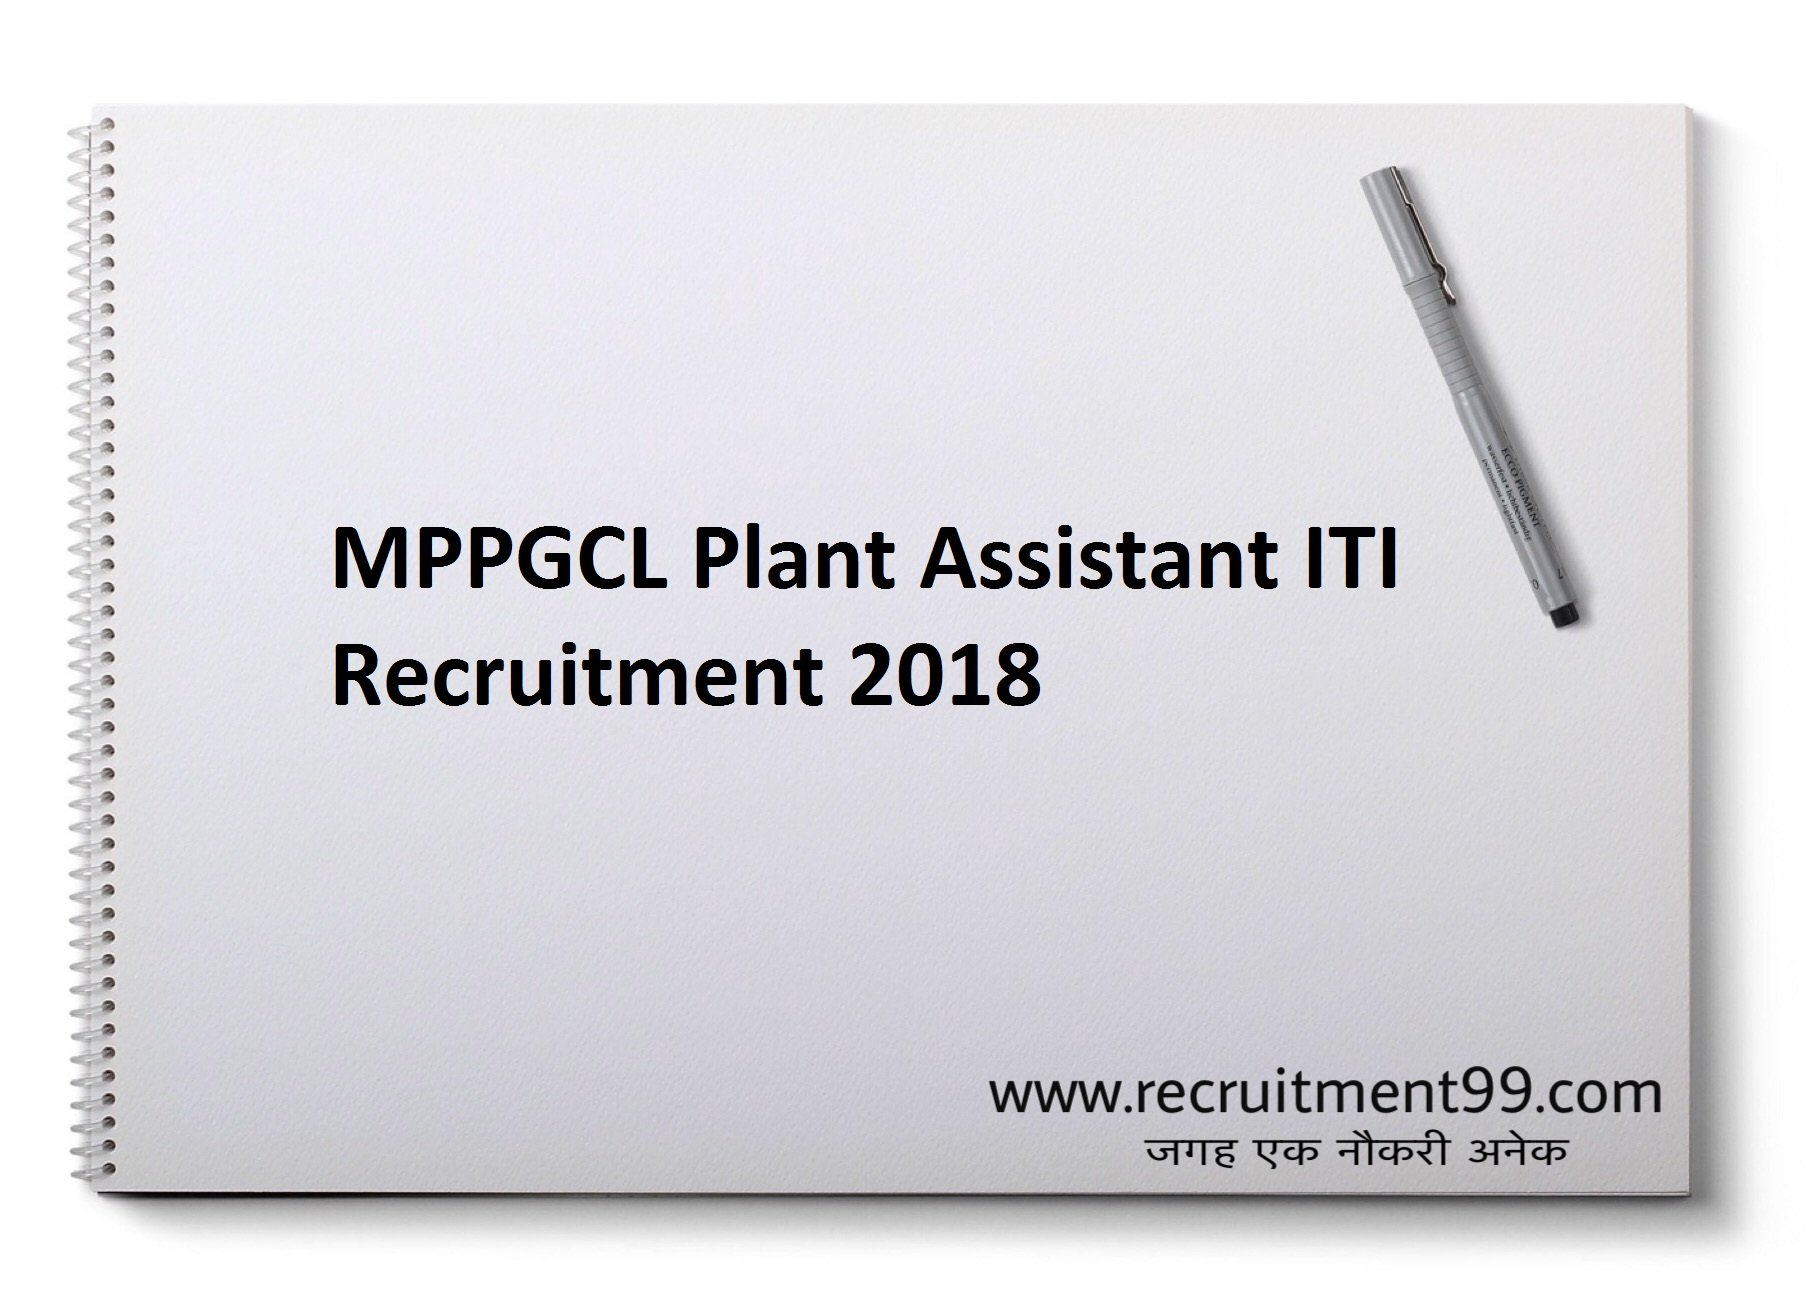 MPPGCL Plant Assistant ITI Recruitment Admit Card Result 2018